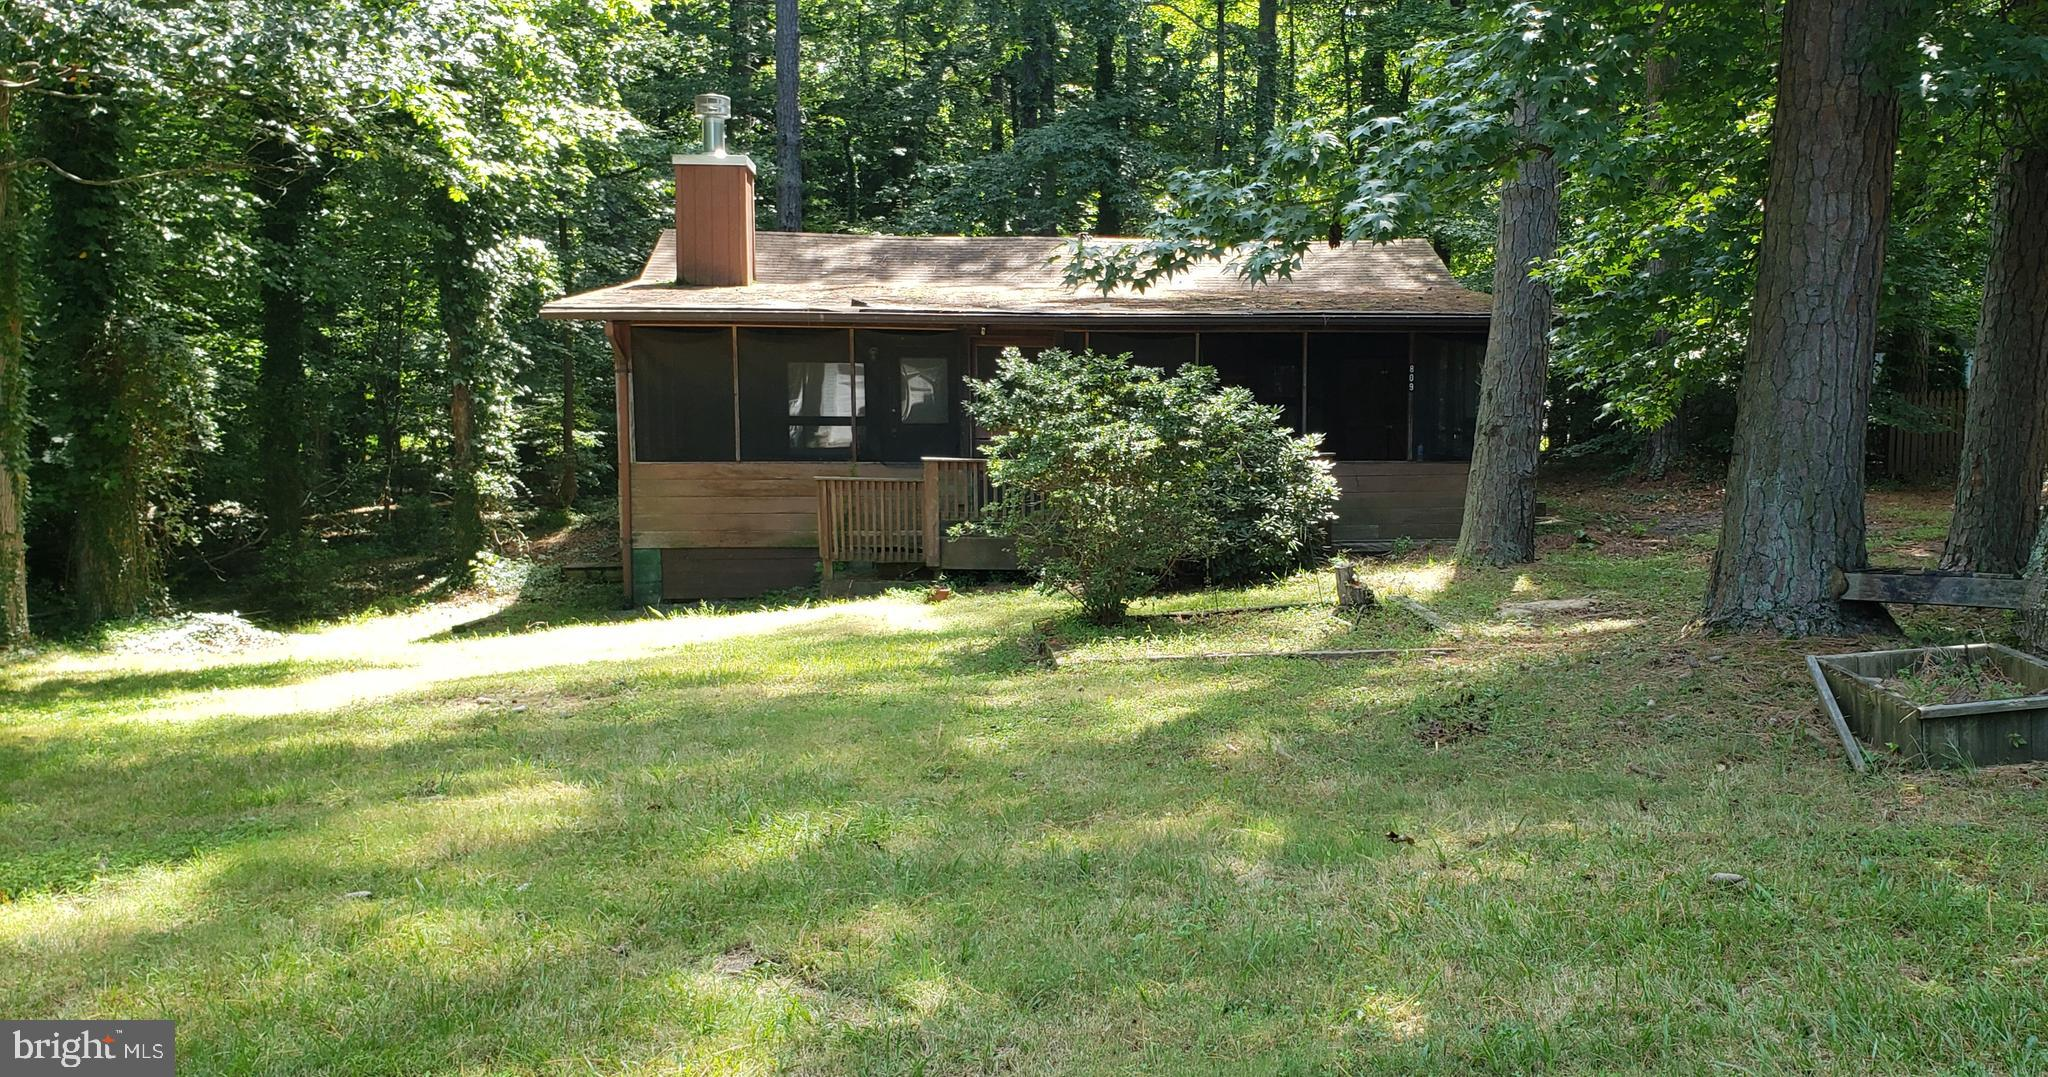 Log cabin in the woods. 2 bedroom cabin with fireplace. Large lot screen porch in front.  This home